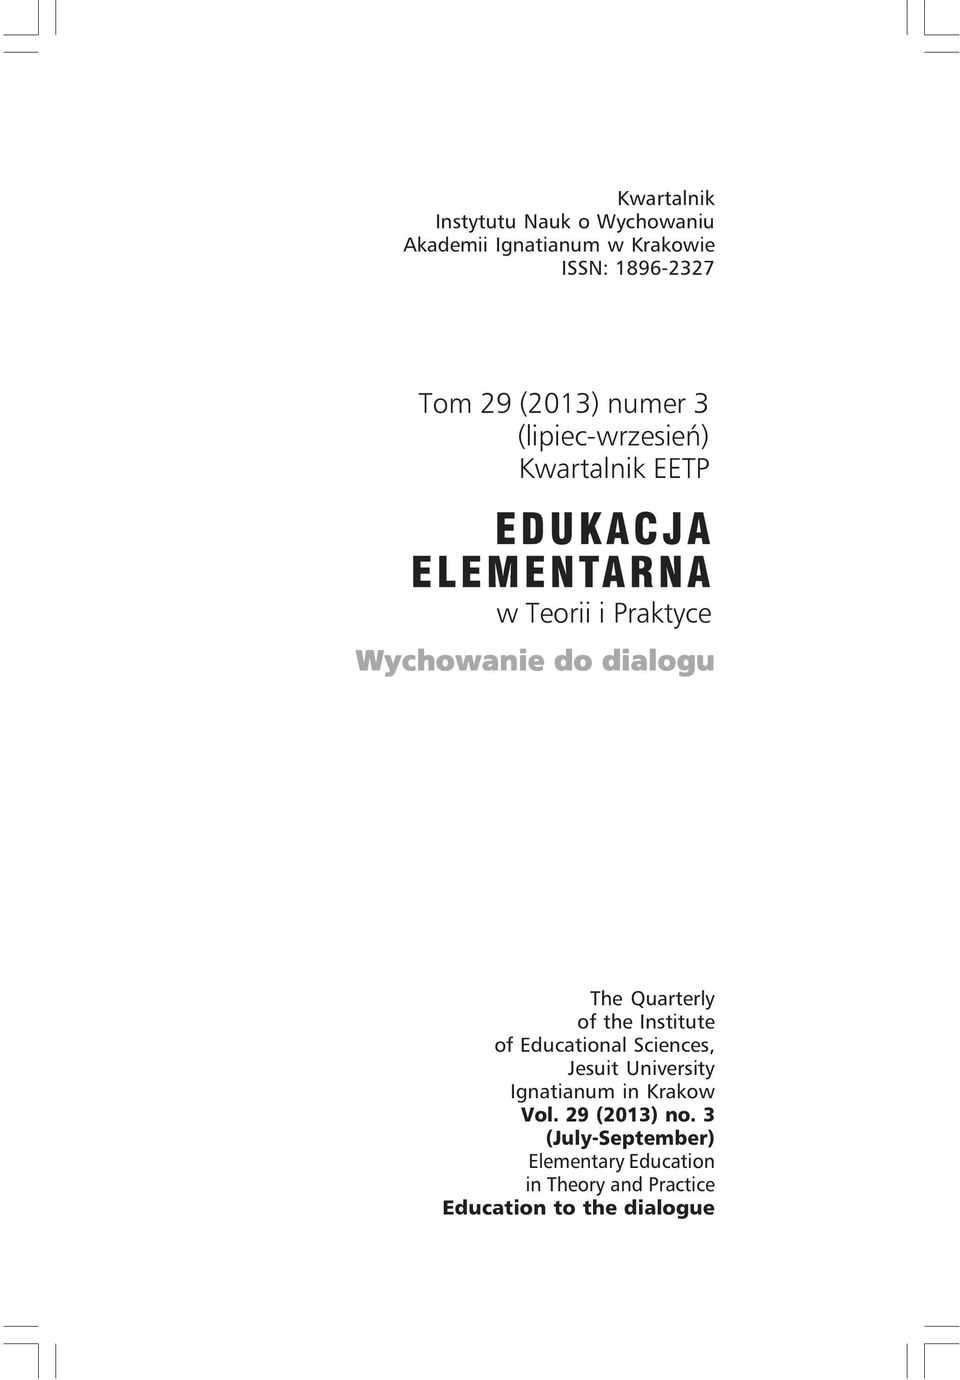 Quarterly of the Institute of Educational Sciences, Jesuit University Ignatianum in Krakow Vol.